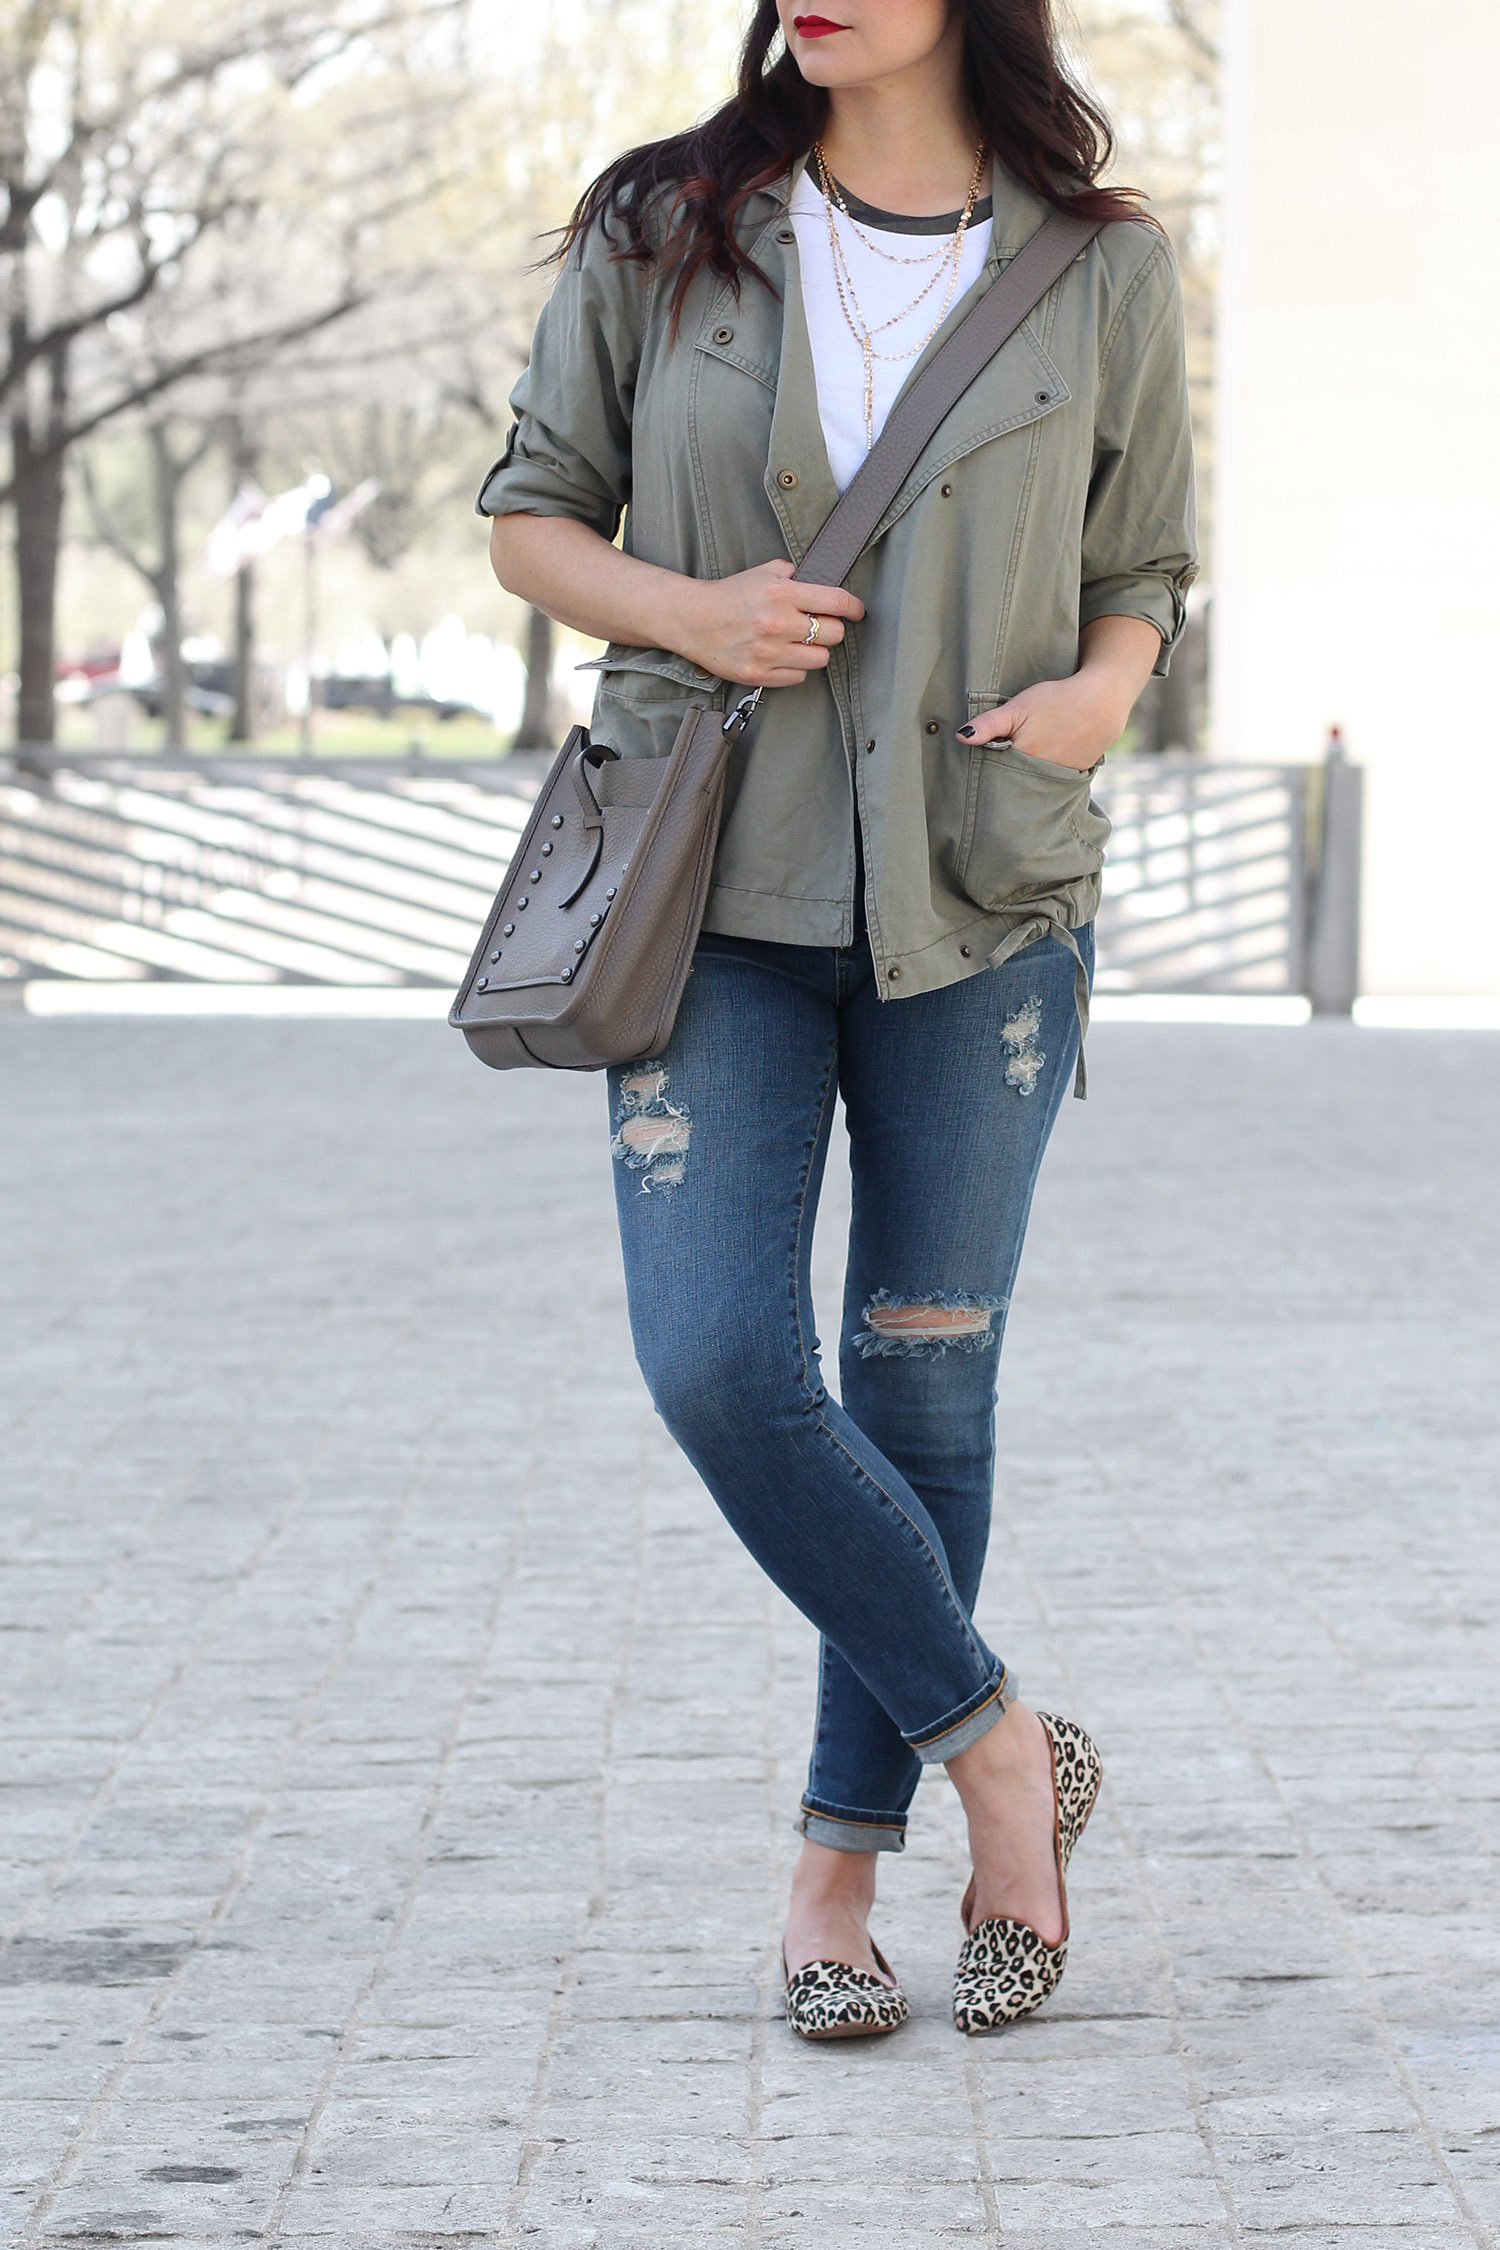 Cute distressed outfit for weekend